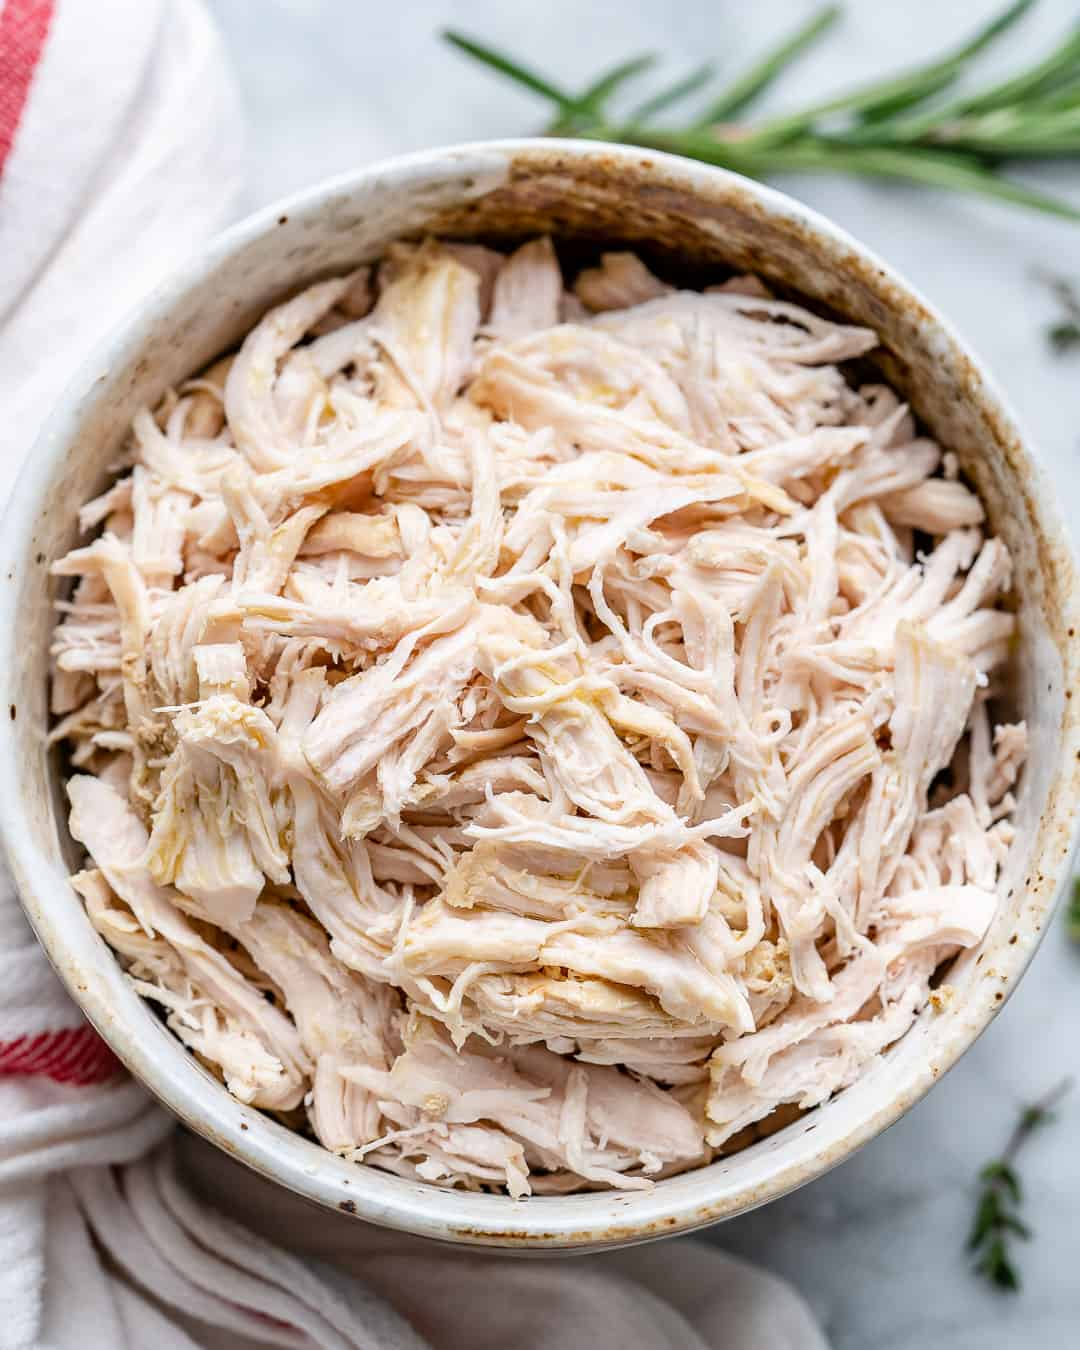 Poached chicken shredded in bowl